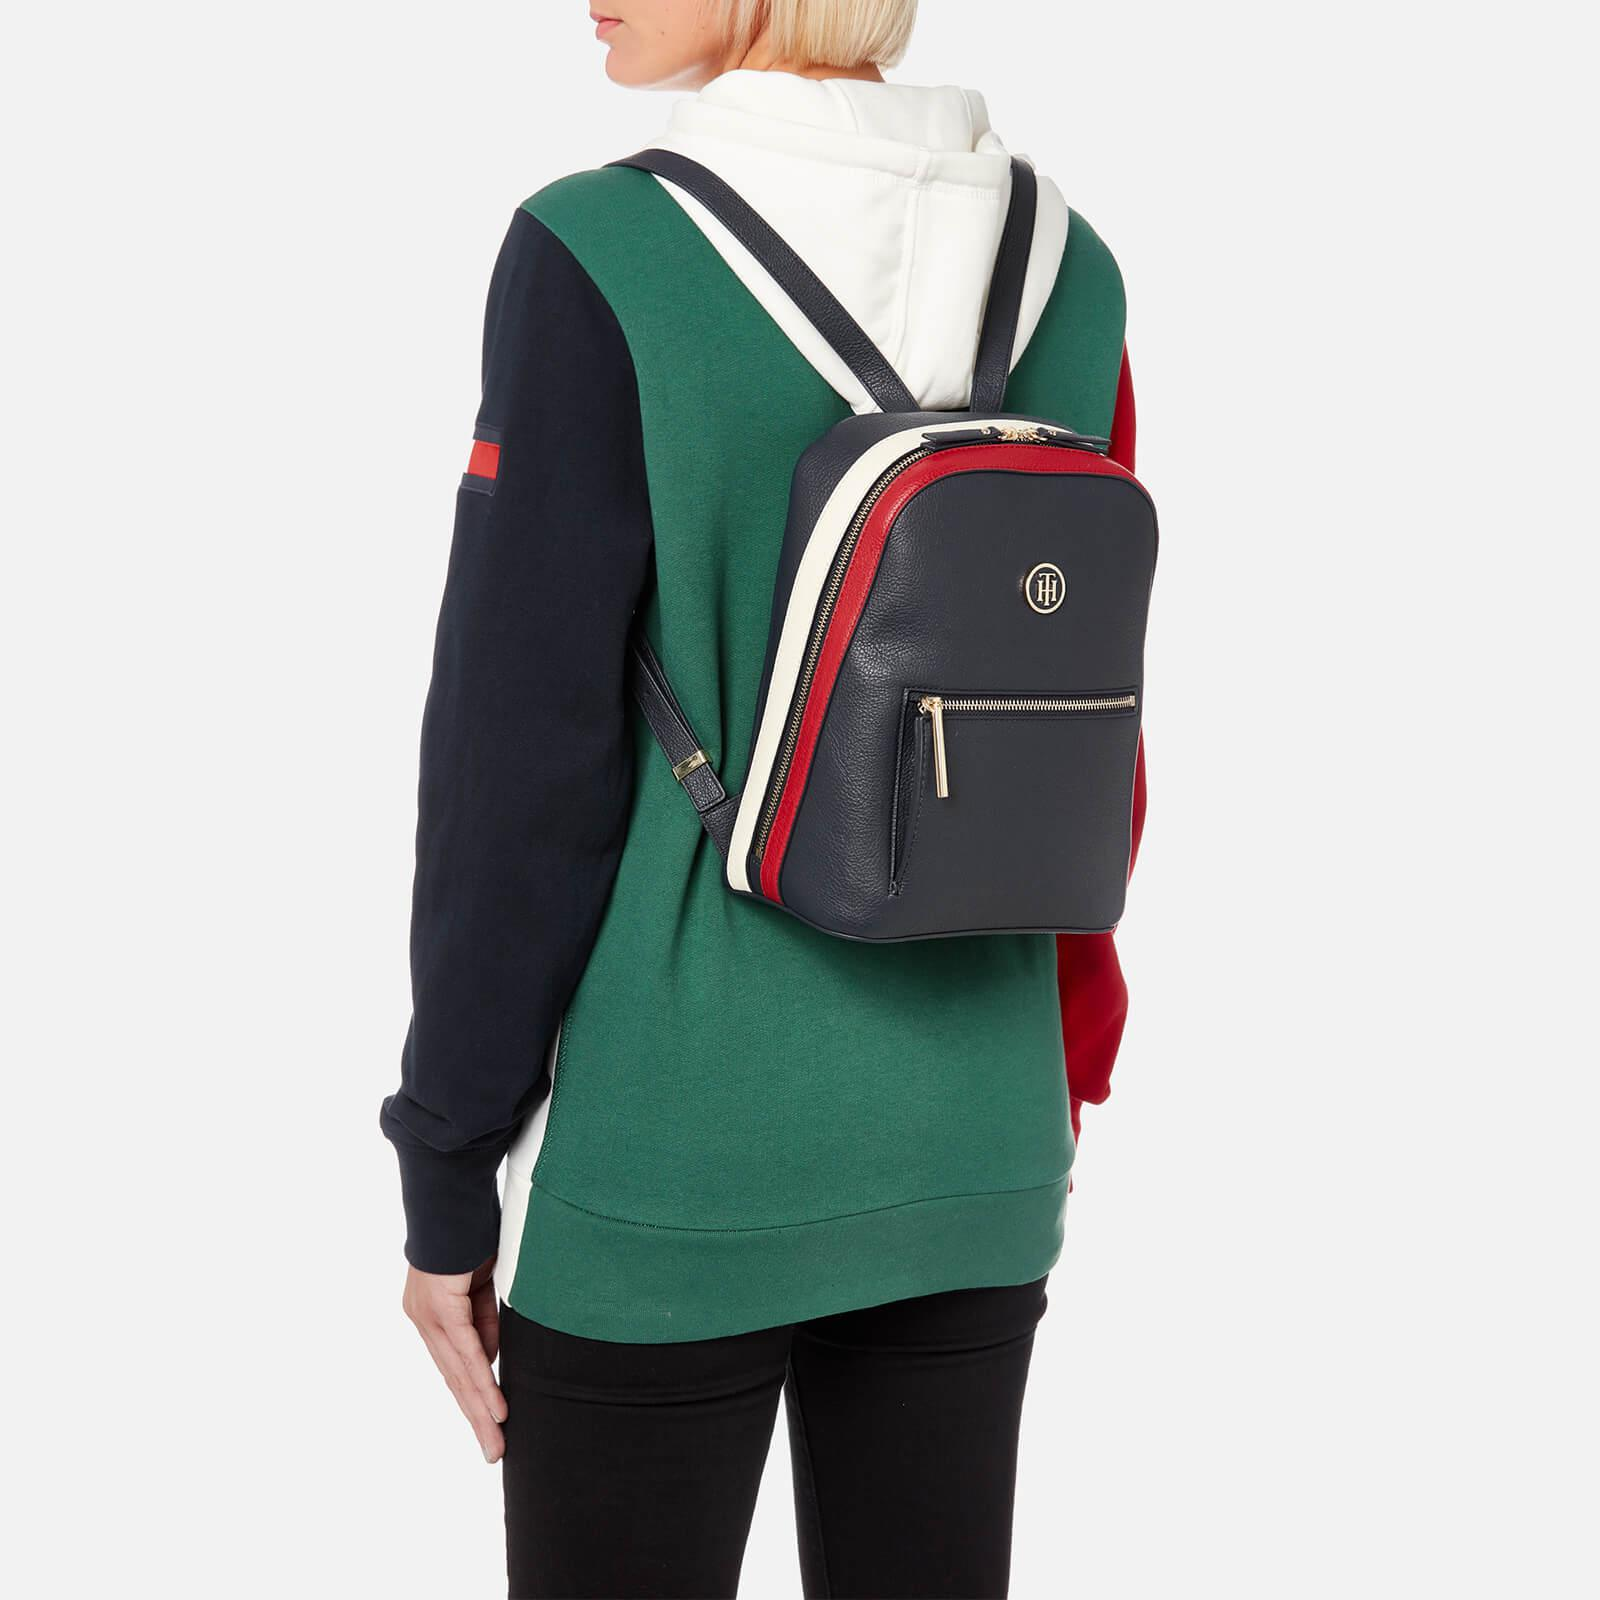 66ad28def1 Gallery. Previously sold at: MyBag, The Hut · Women's Mini Backpack